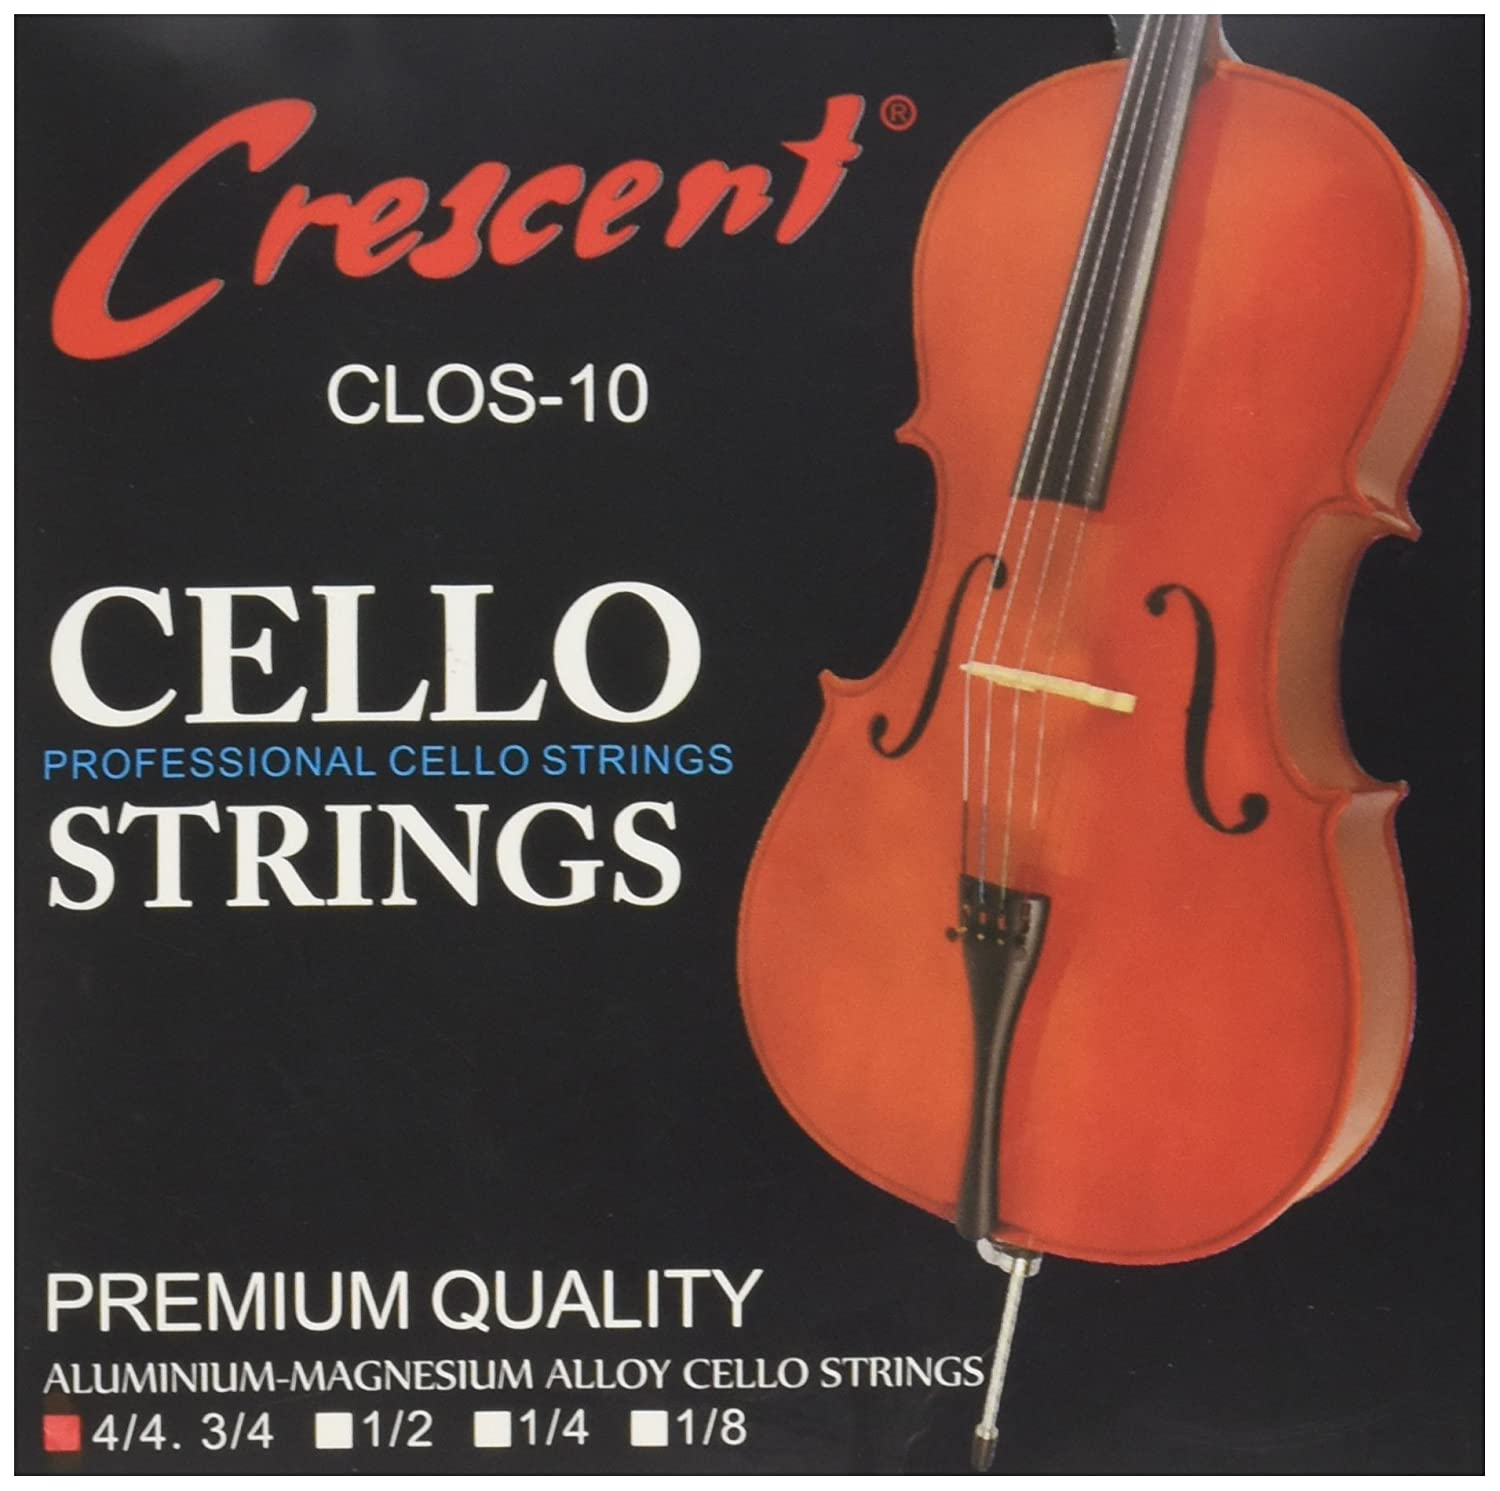 Nickel Silver Wound Cello Strings 4/4 Set Crescent 003986